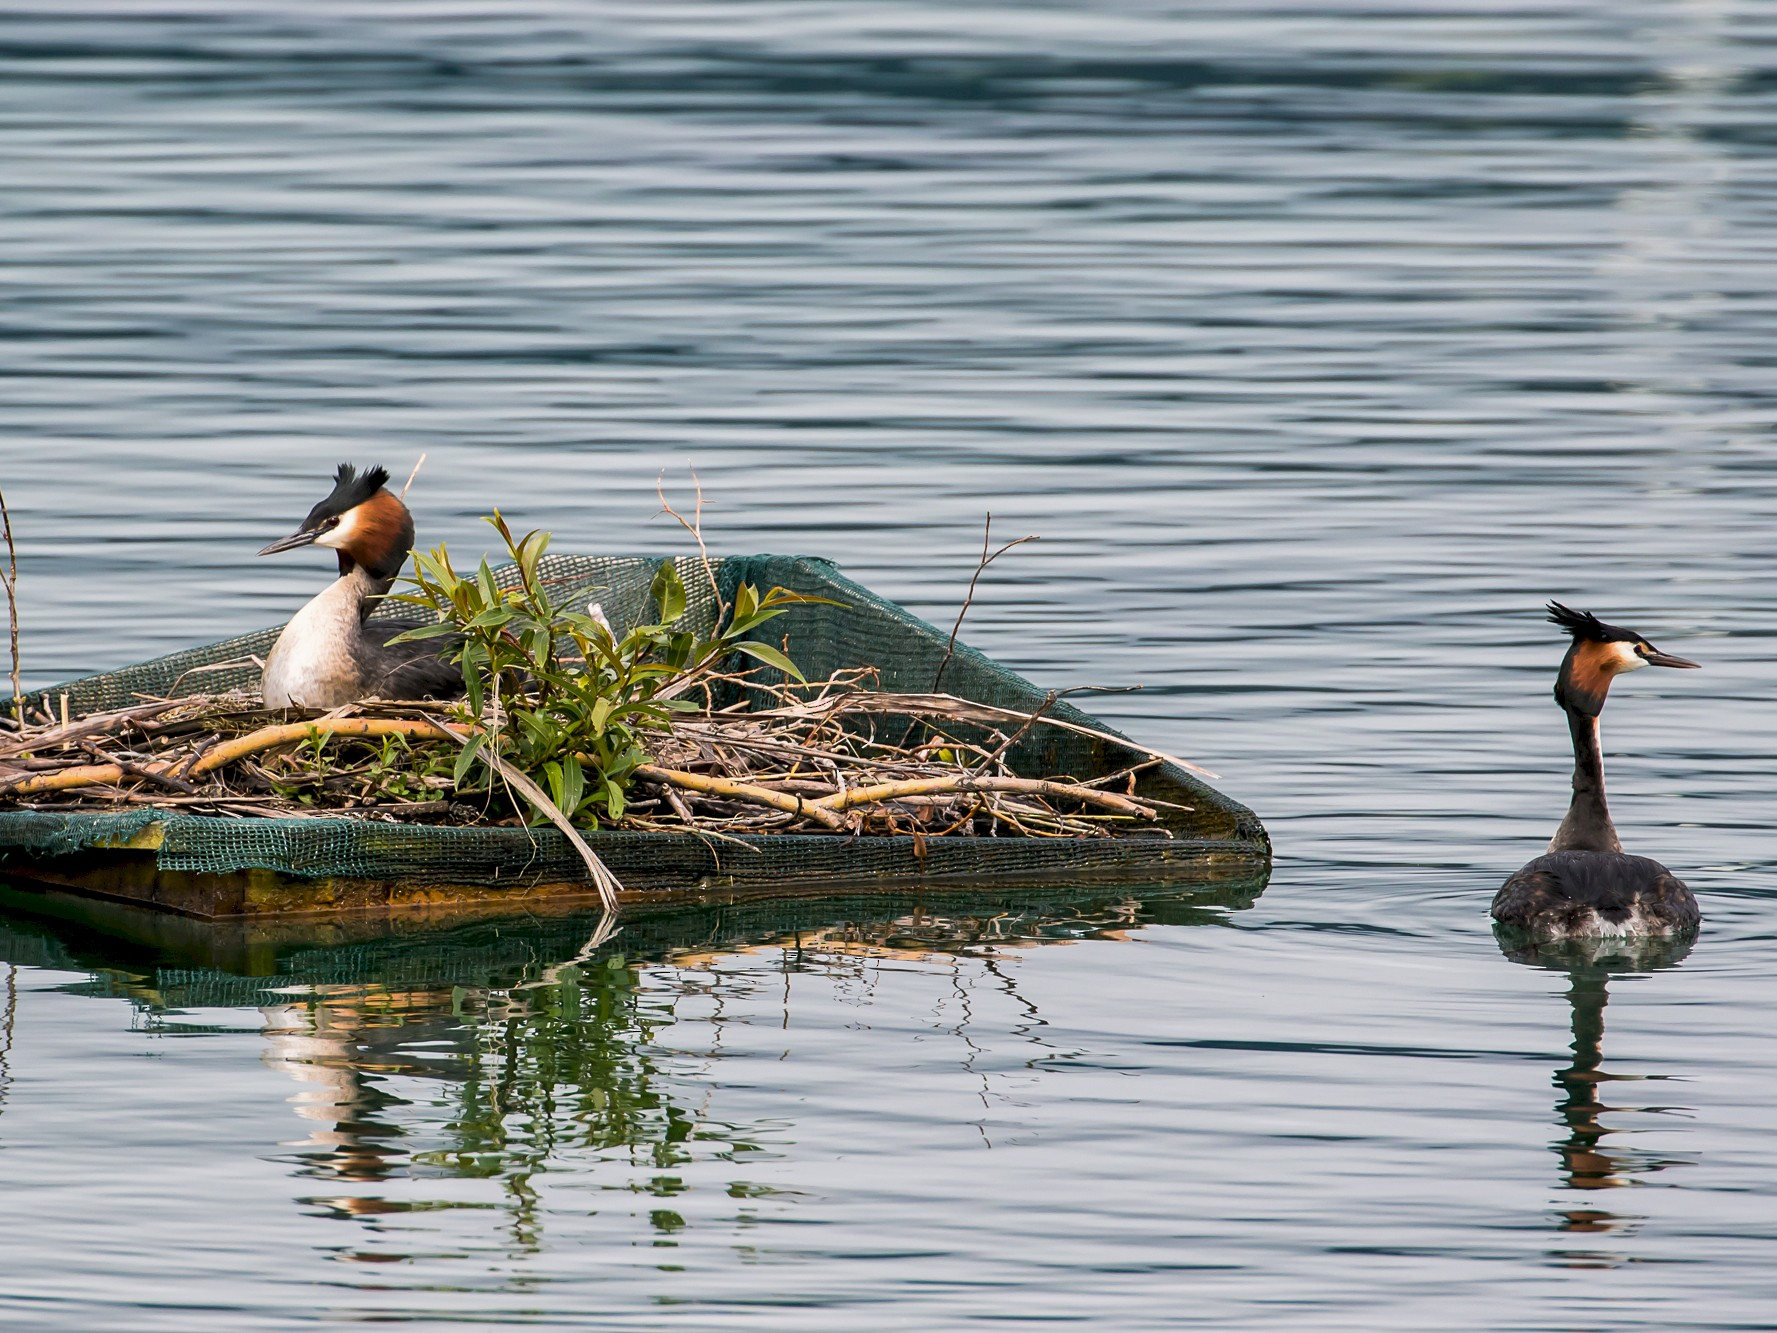 Great Crested Grebe - graichen & recer